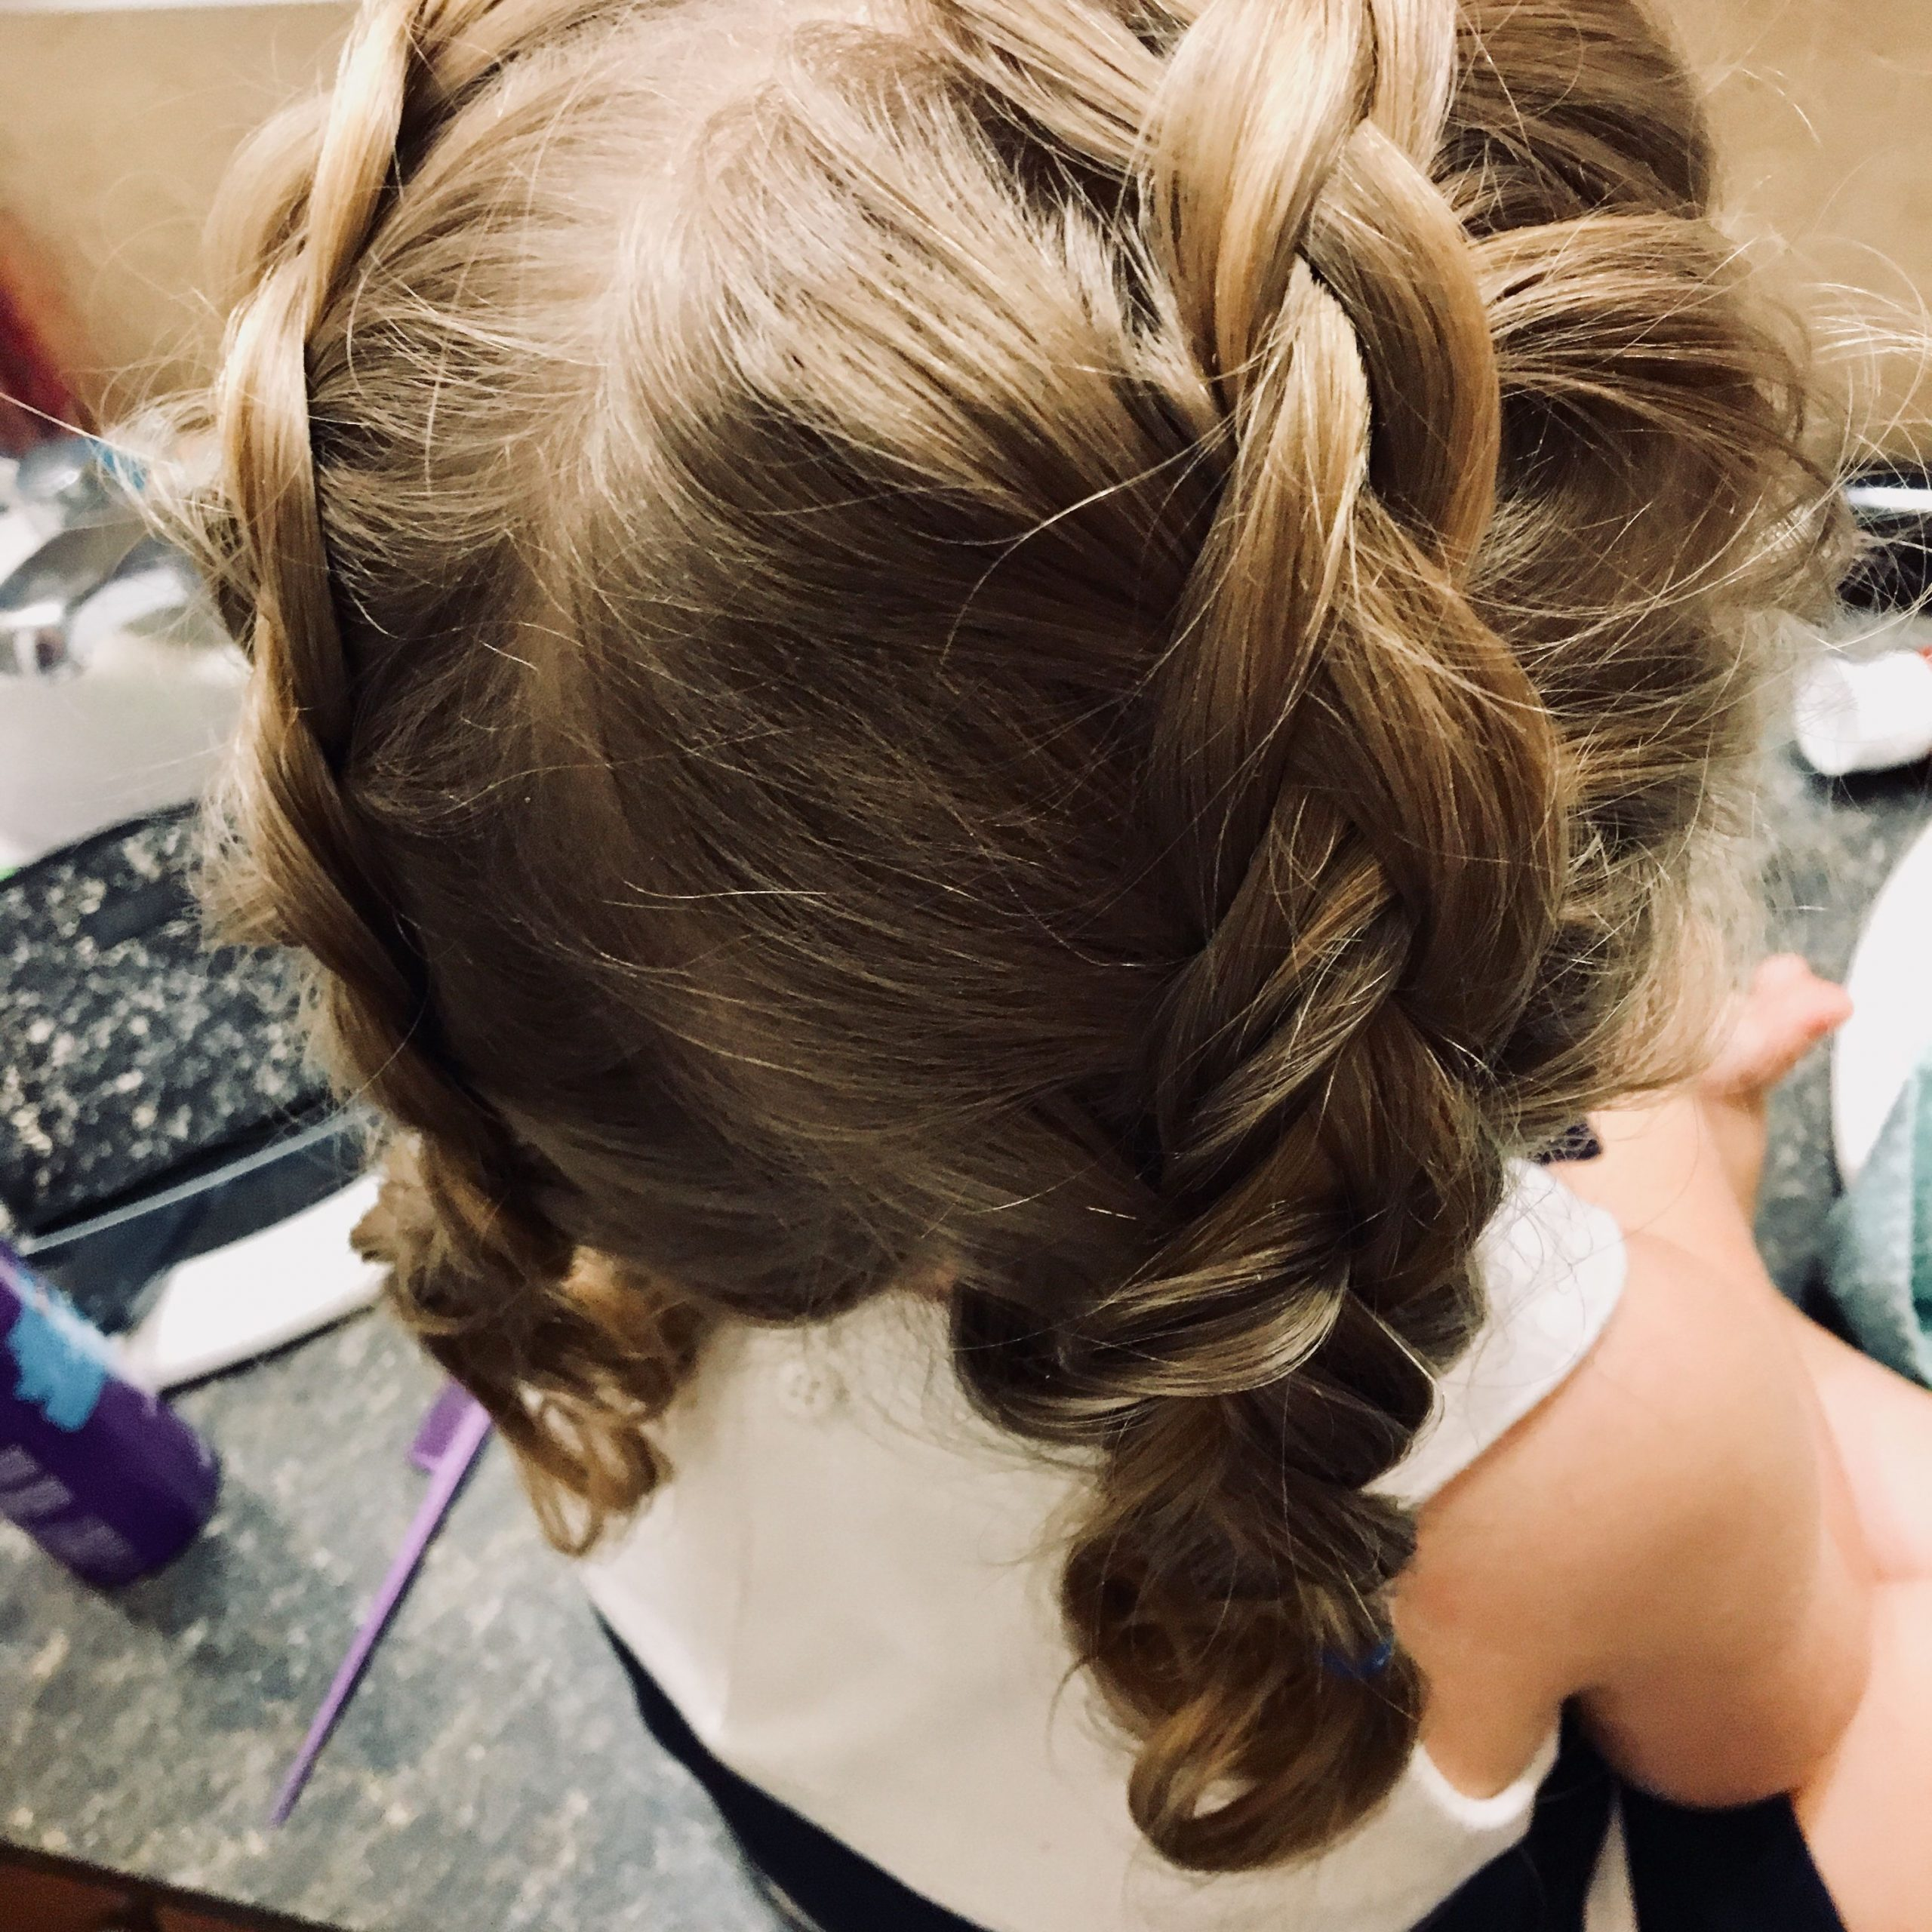 Double Dutch Braids On Curly Headed Toddler (View 5 of 20)